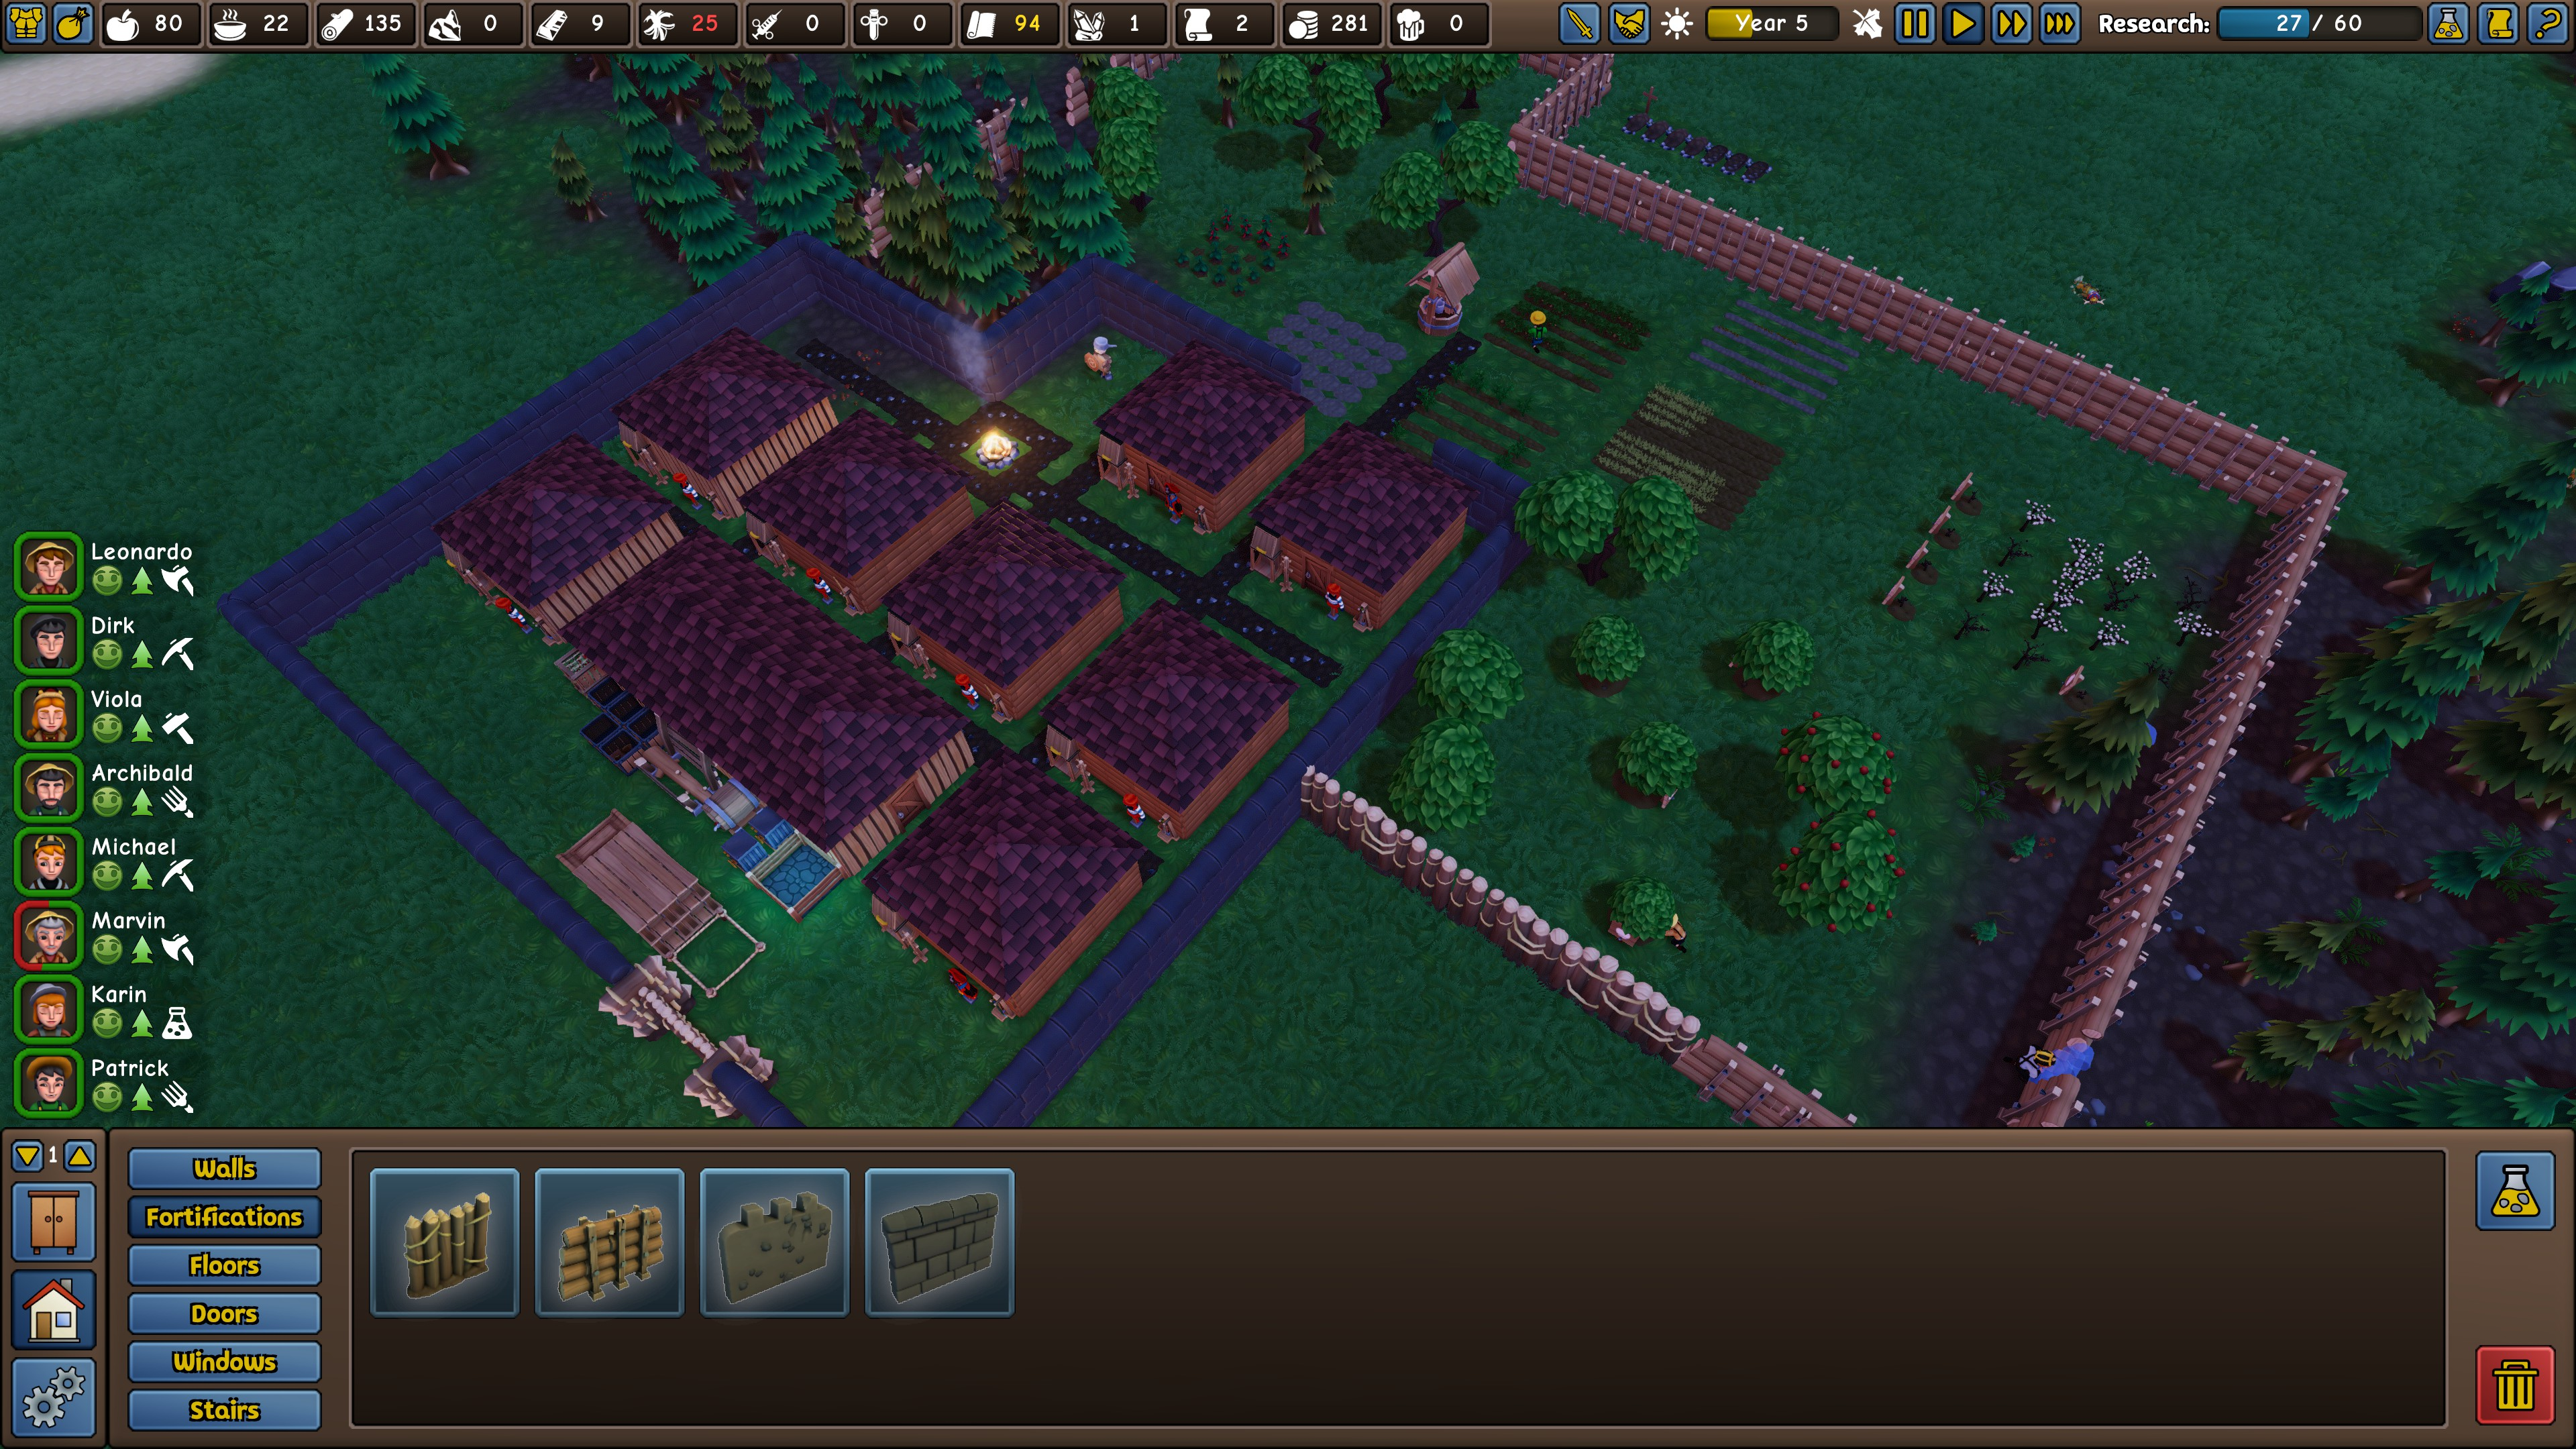 Founder's Fortune. A nighttime overview of a walled-in base with 9 rectangular buildings, 7 growing areas, and two orchards. Building options include walls, fortifications, floors, doors, windows, and stairs.